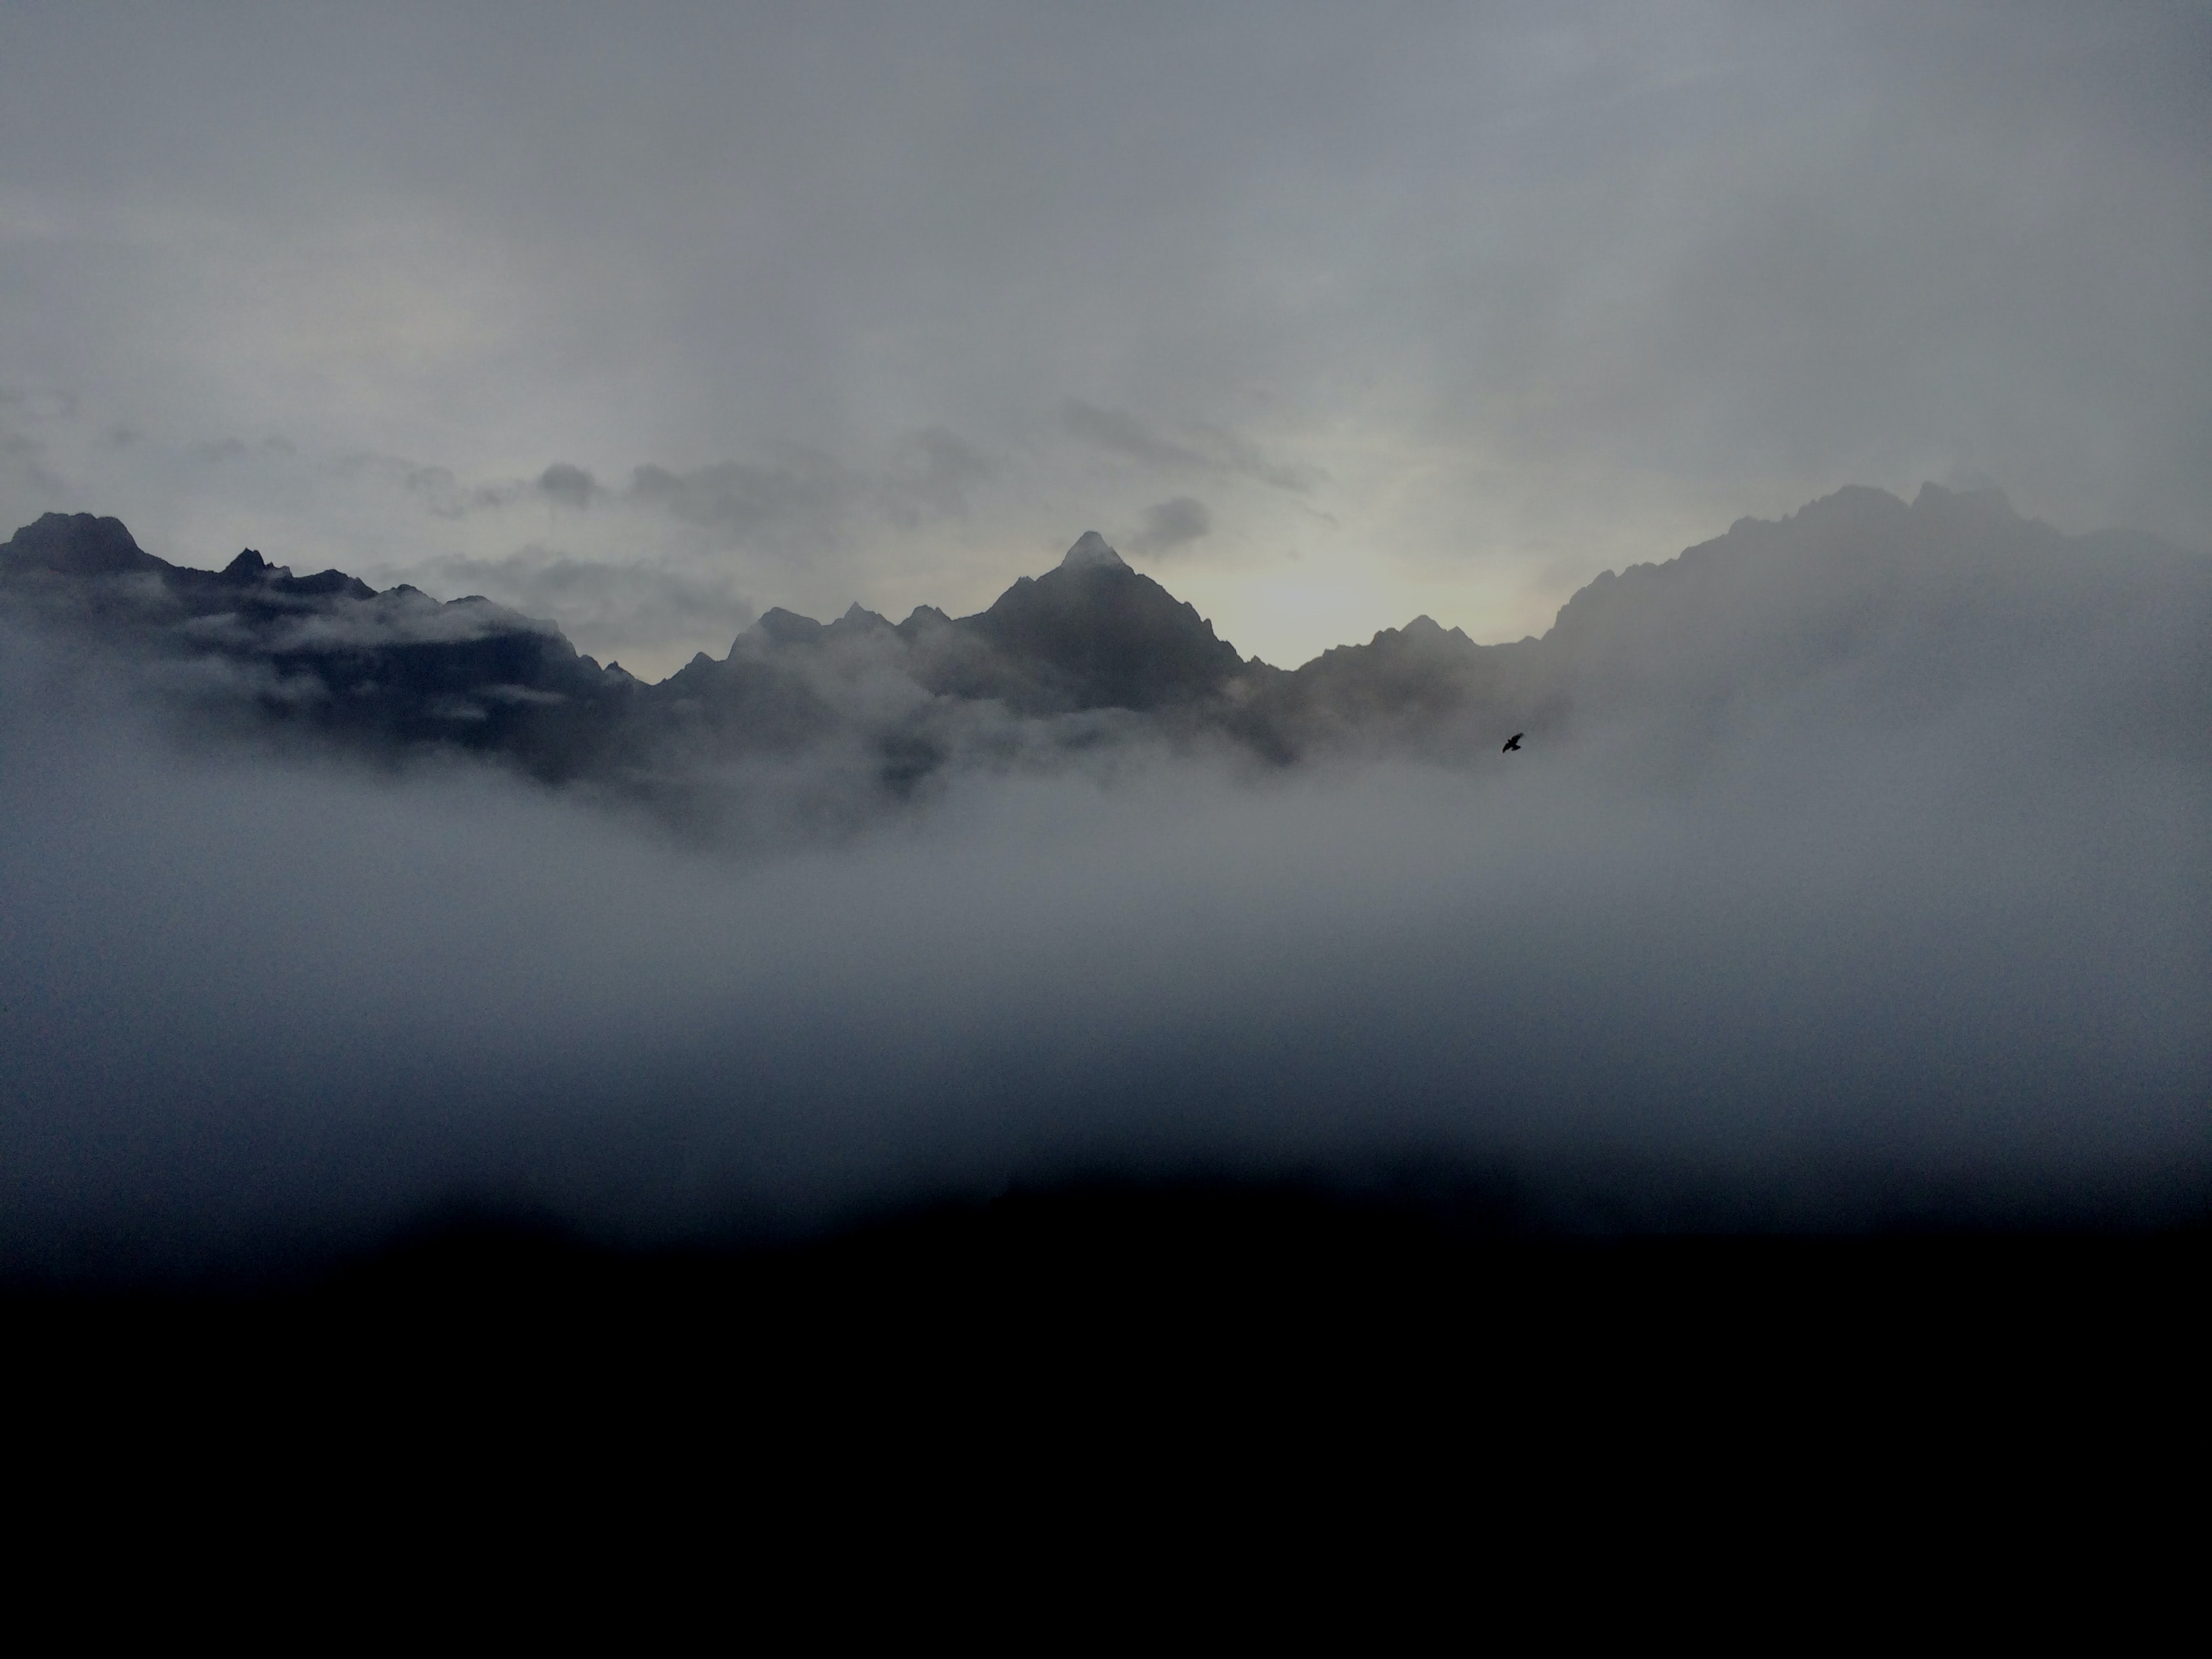 Thick clouds framing the silhouette of a sharp mountain ridge